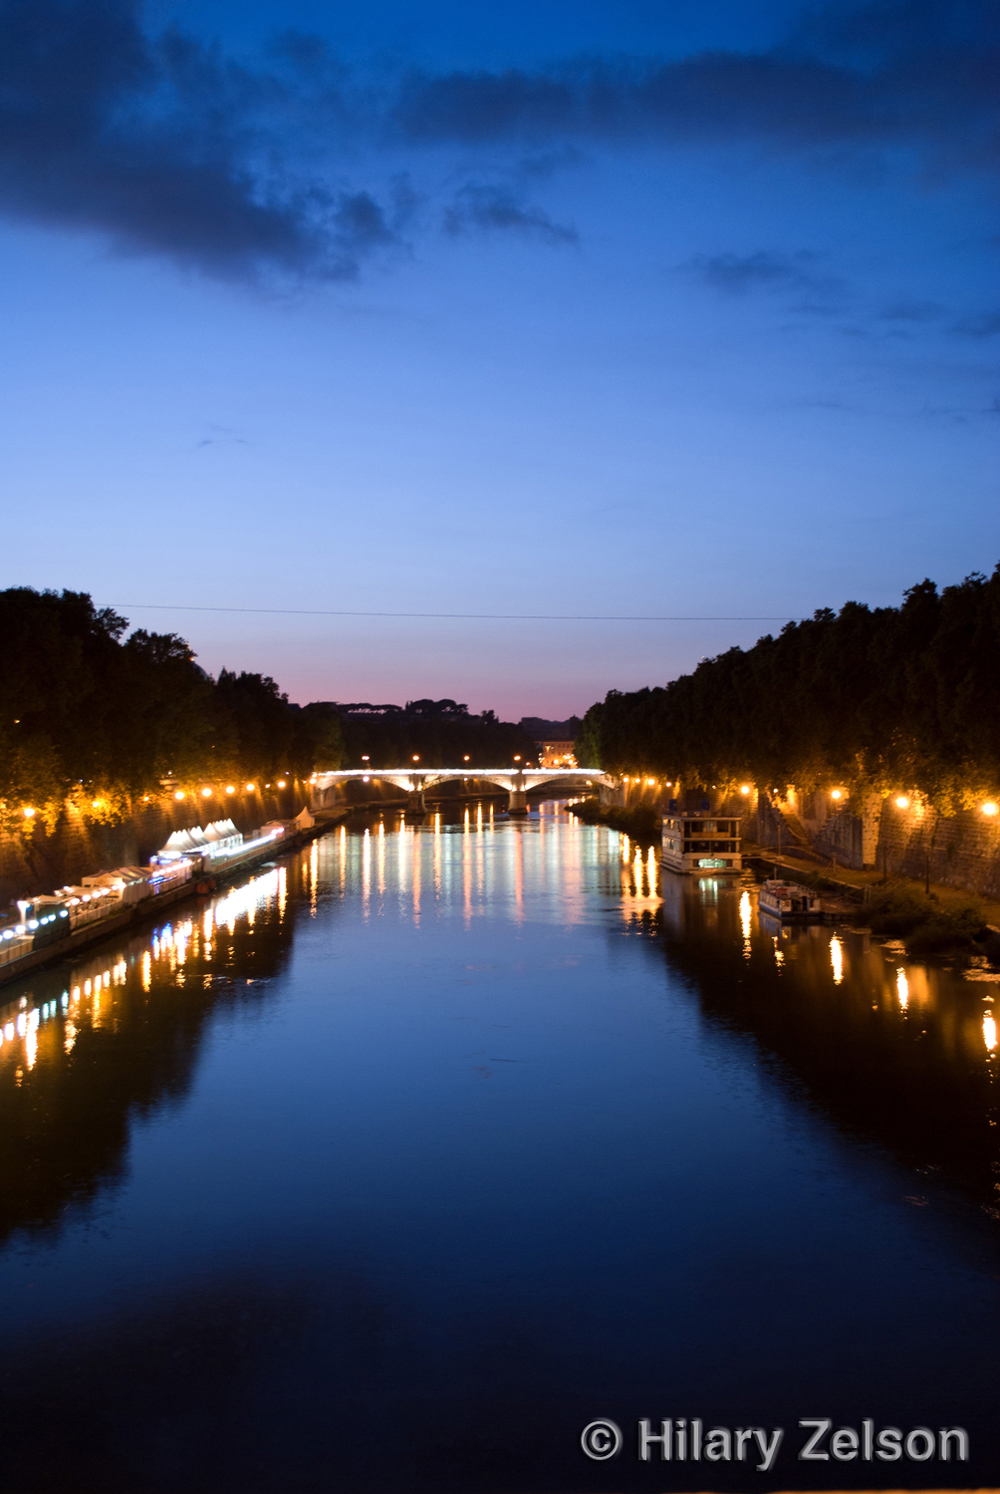 Commotion Along the Tiber